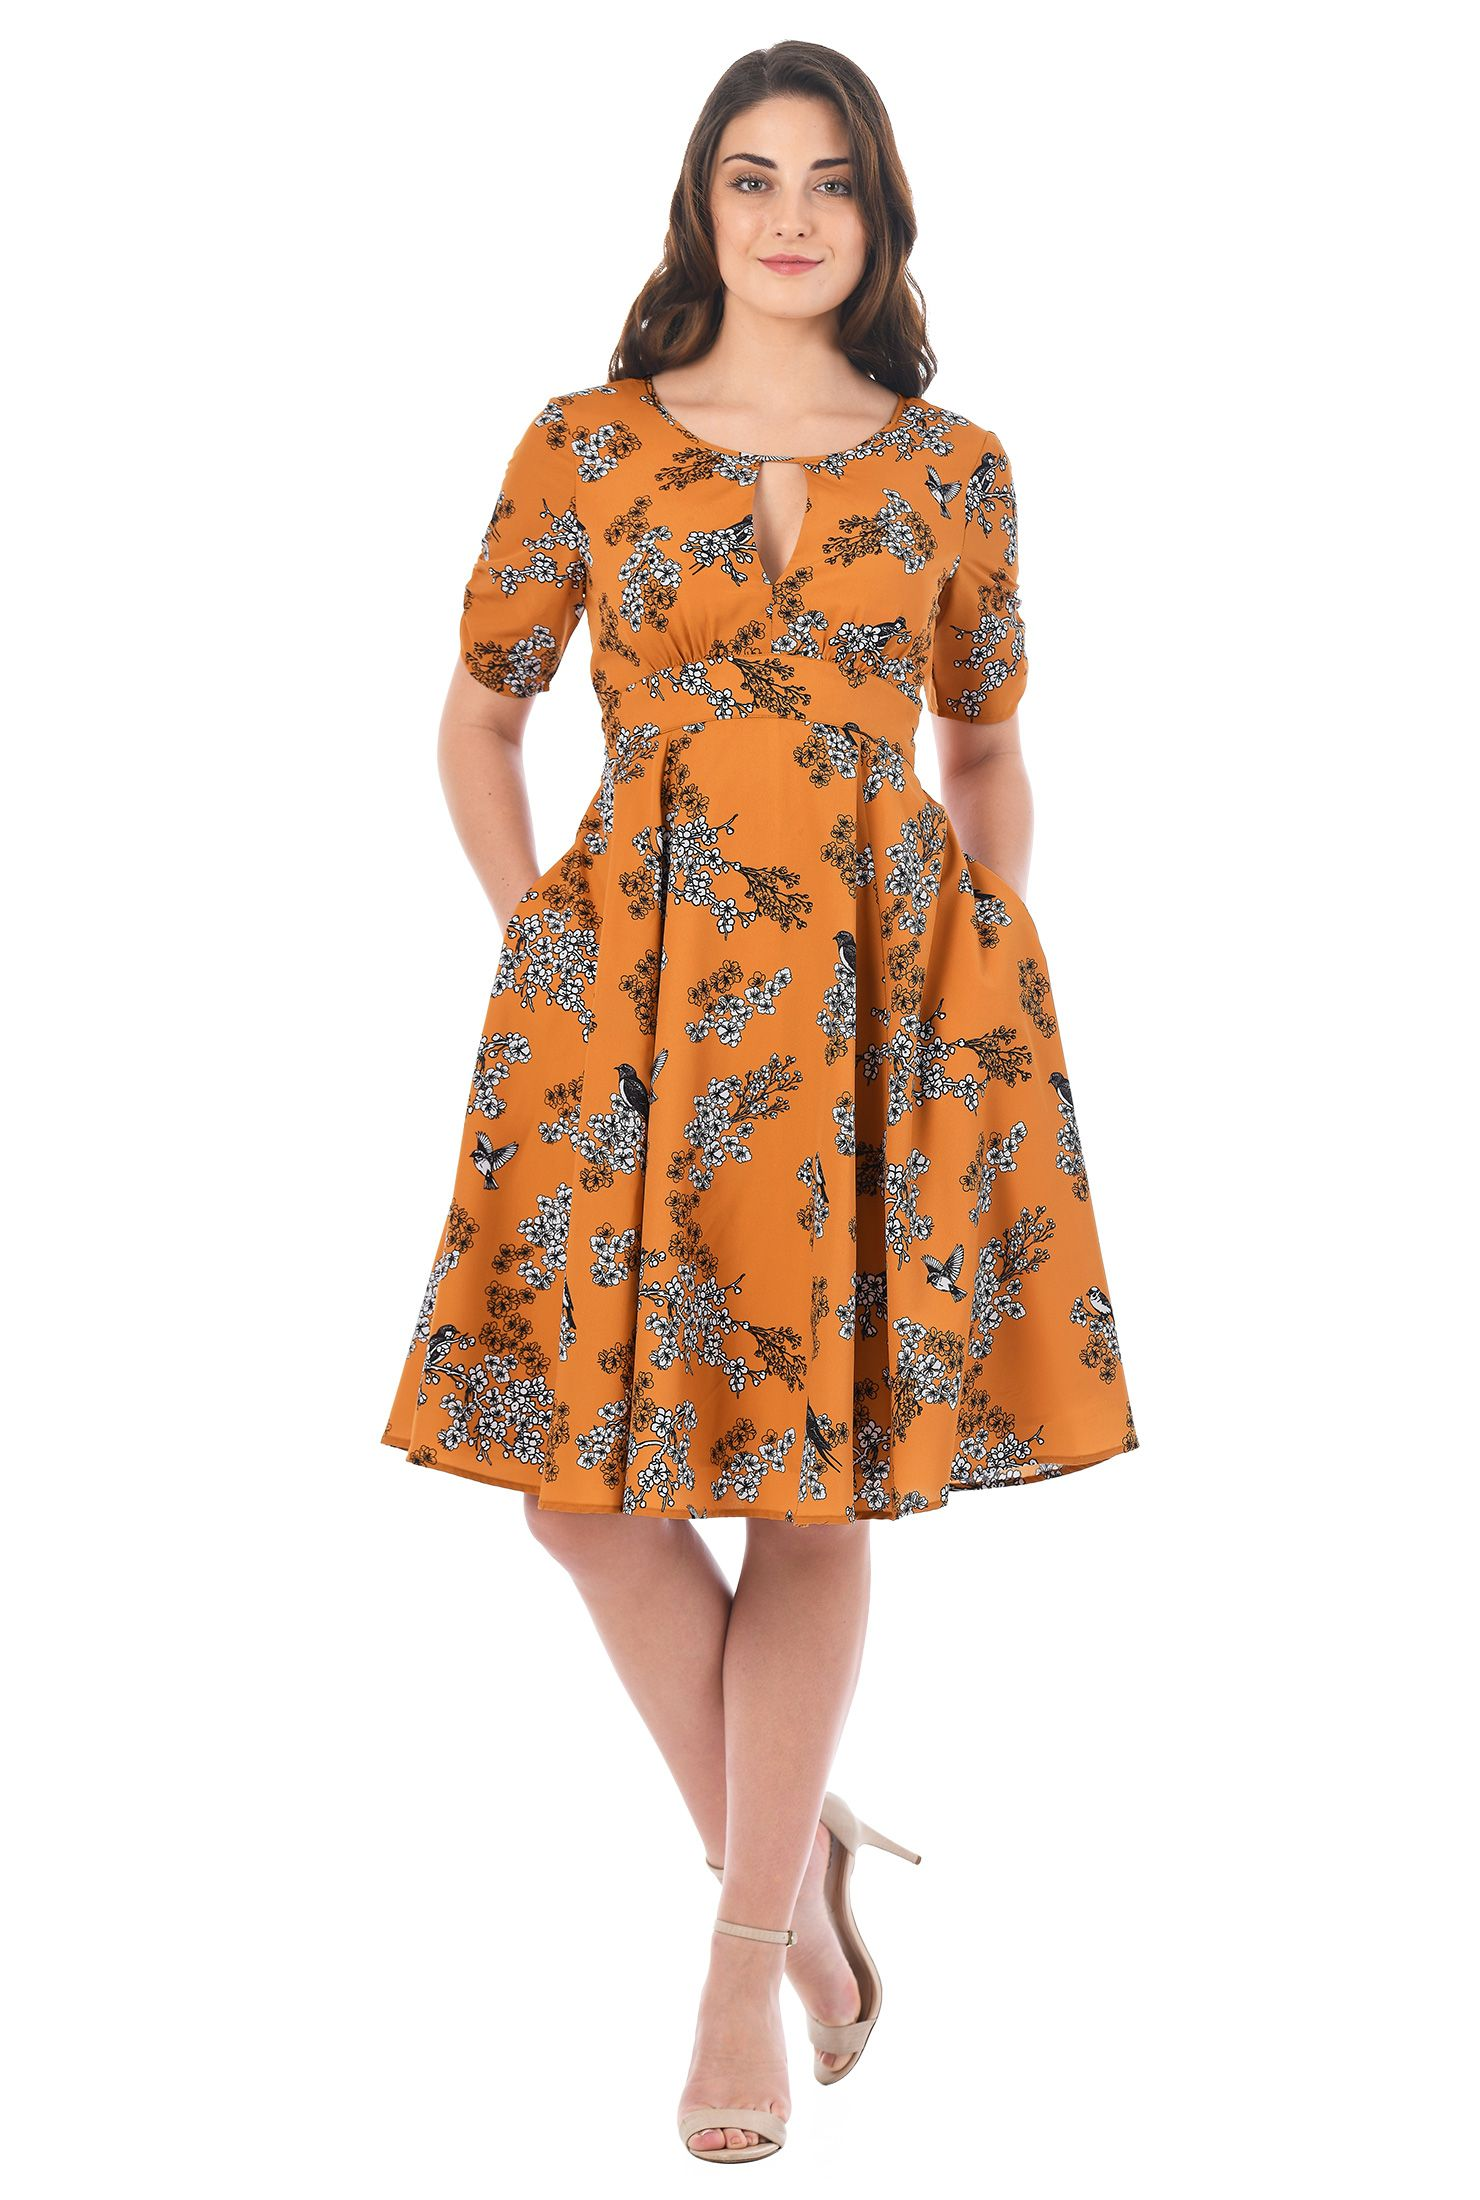 b2cf7be771d1 Bird with floral branch print patterns our soft crepe dress